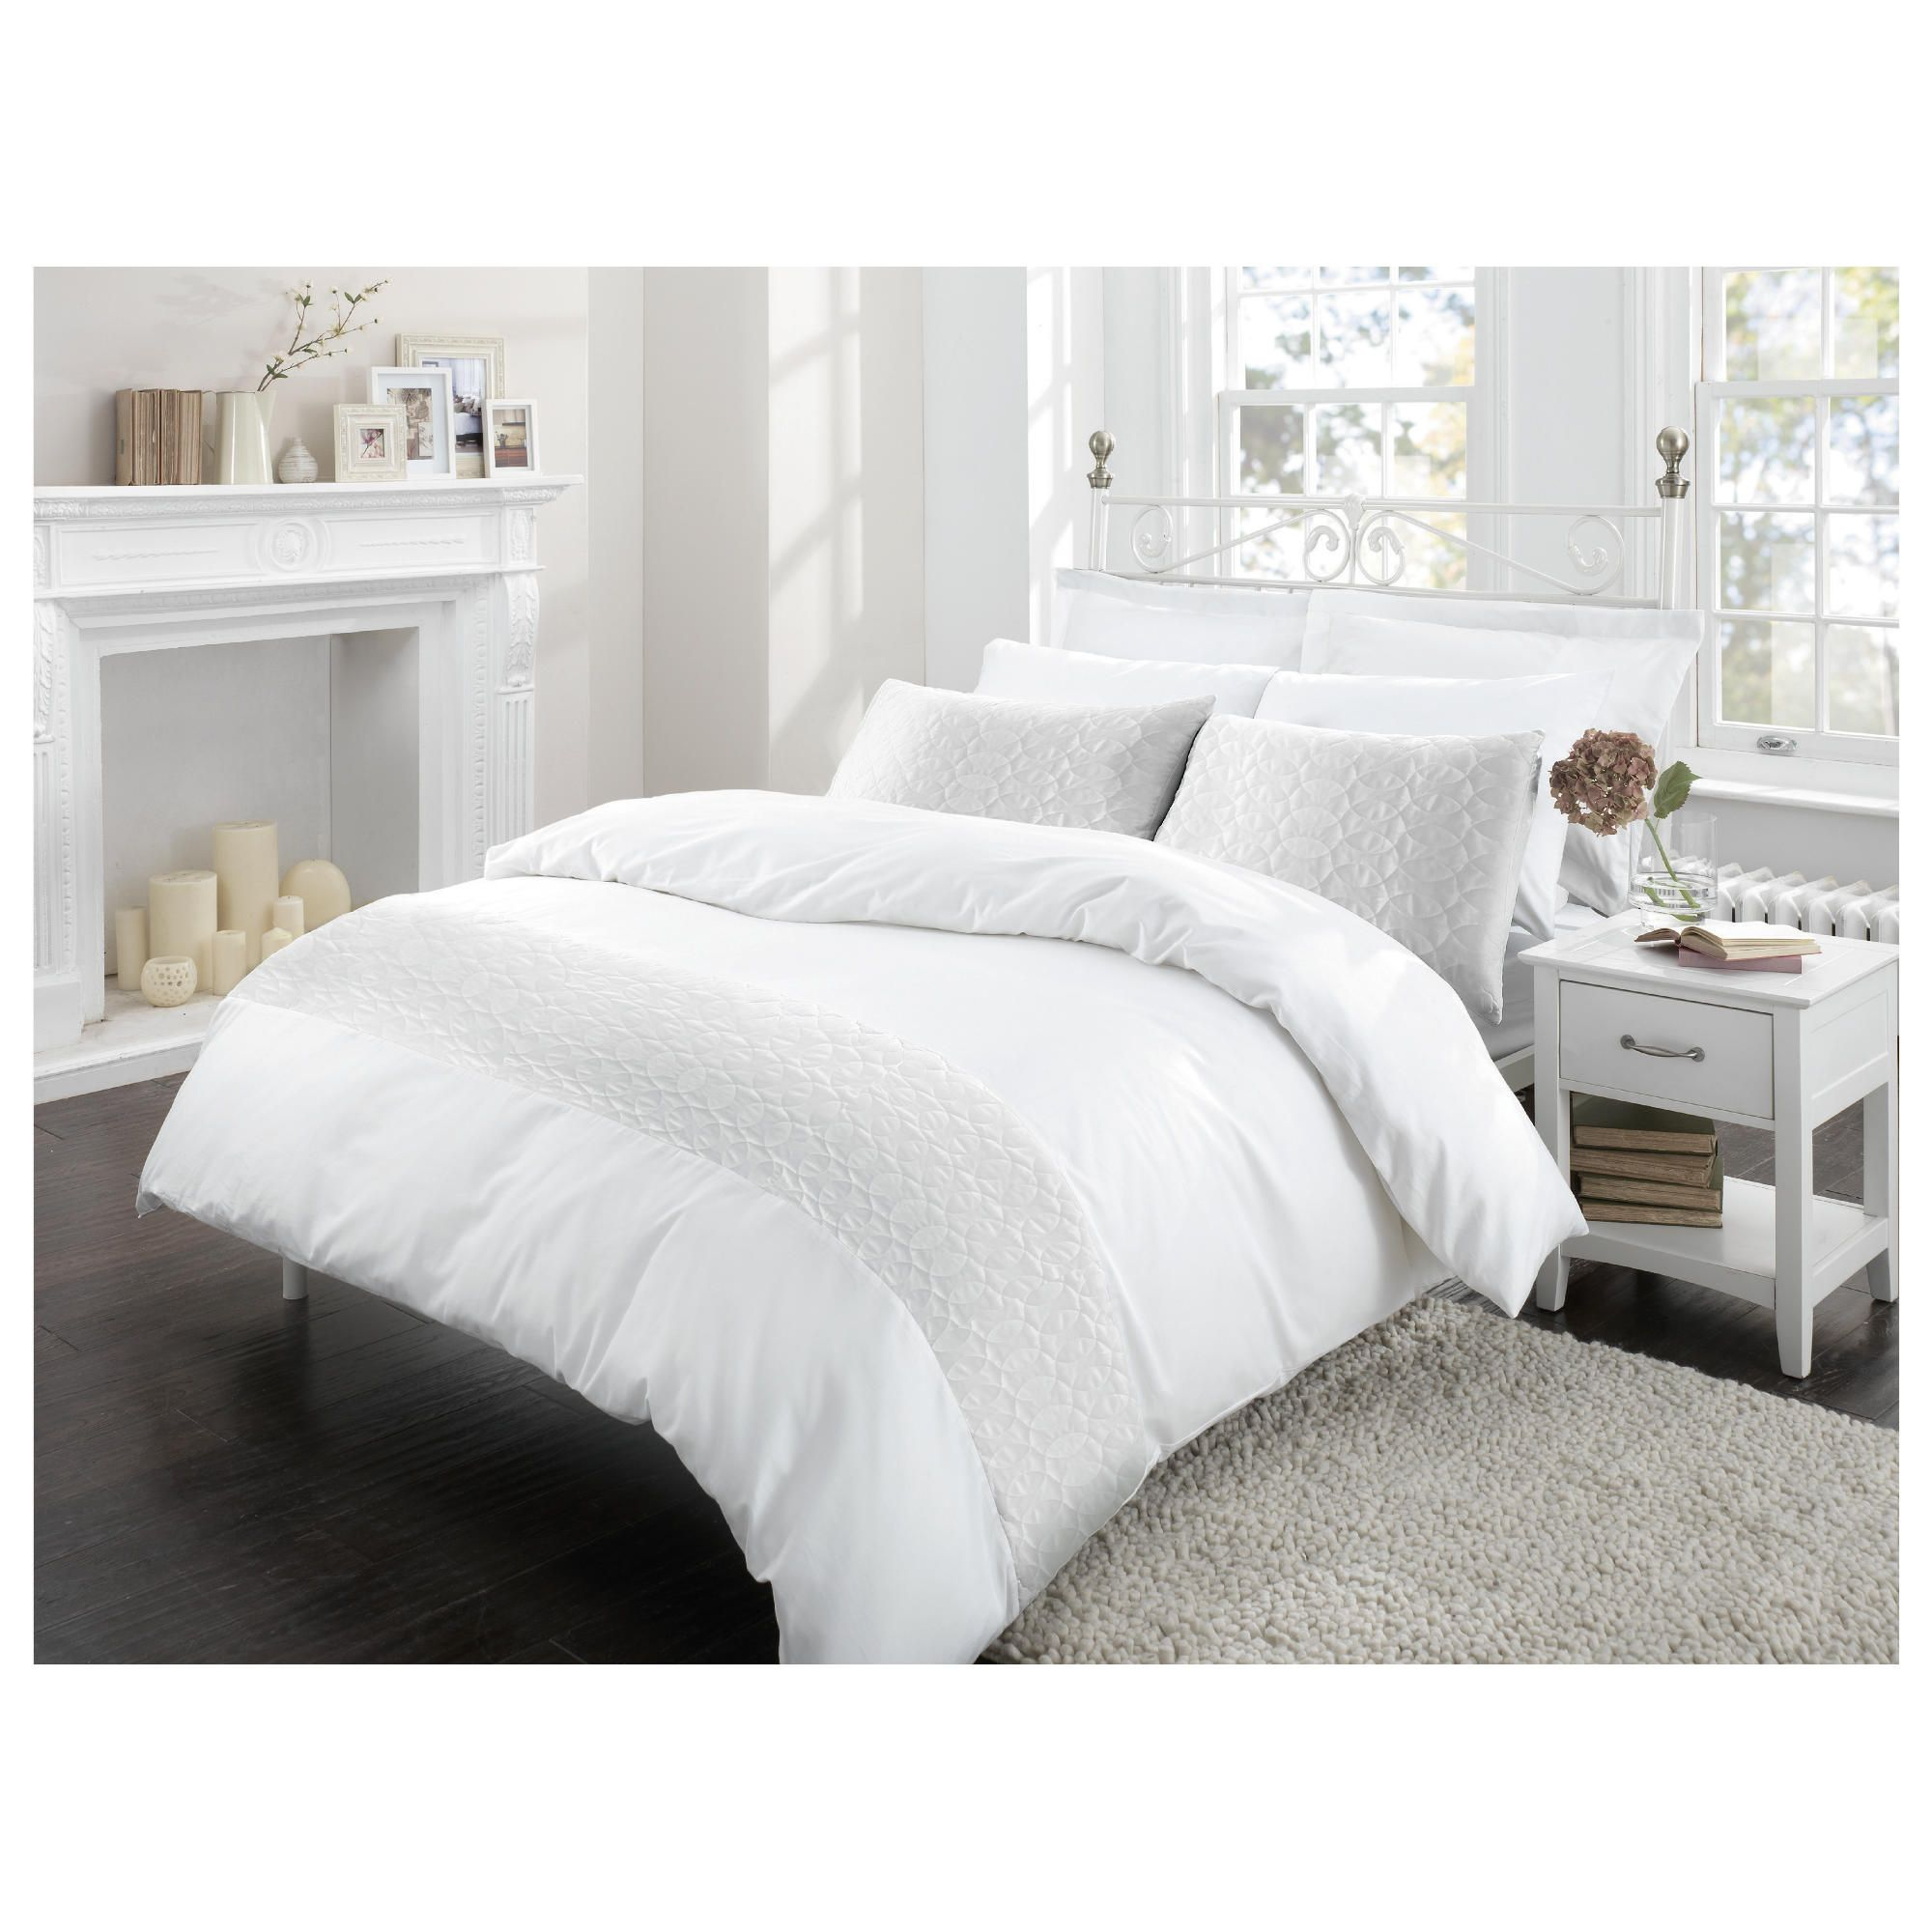 Home and garden bedroom finest pima cotton quilted for Pima cotton comforter